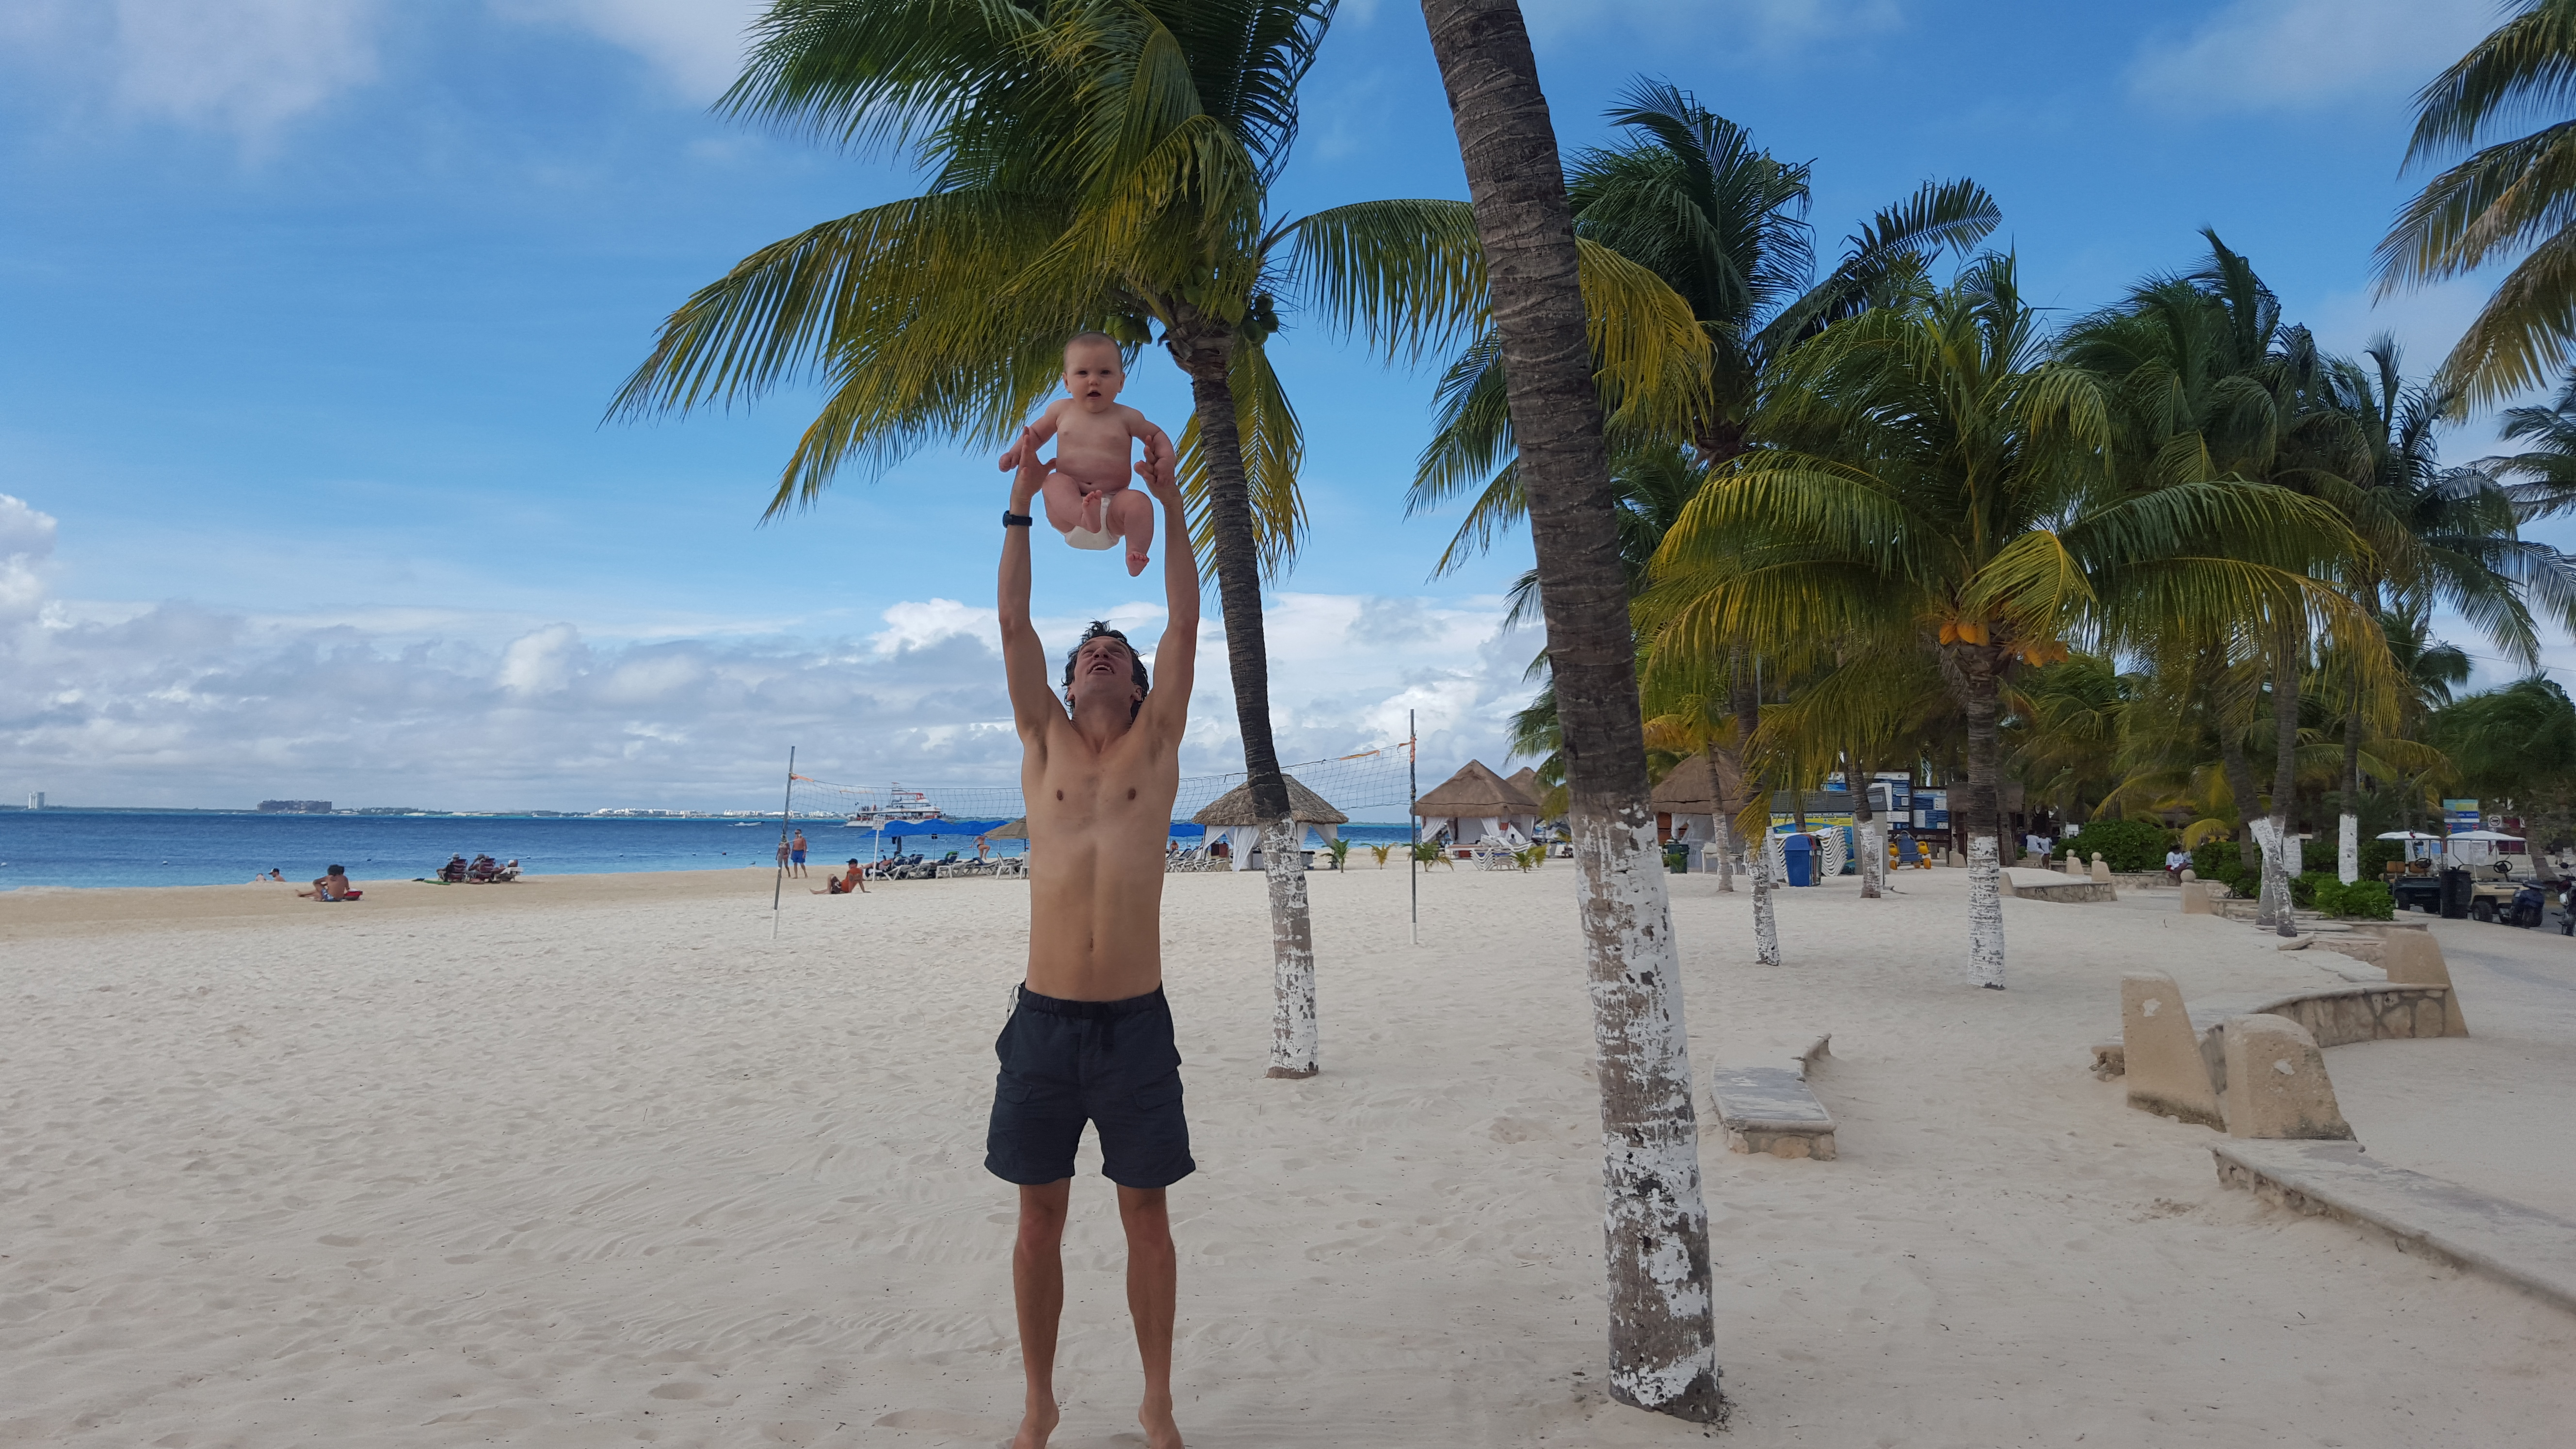 Mexico with our 5 month old - 1 year ago!